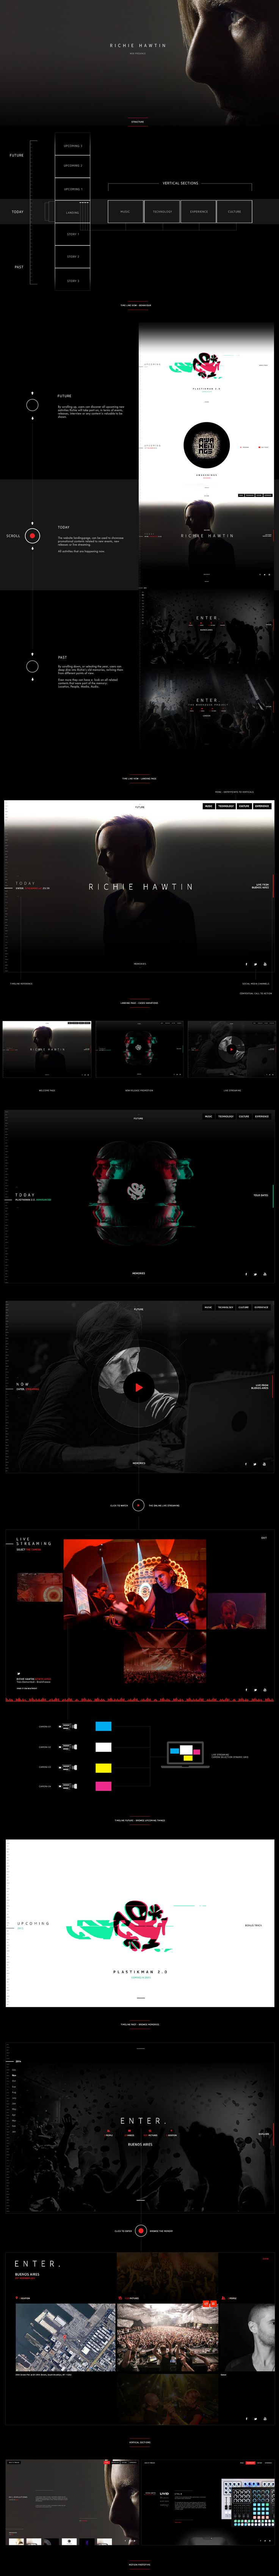 Richie Hawtin - envisioning the web presence on Behance